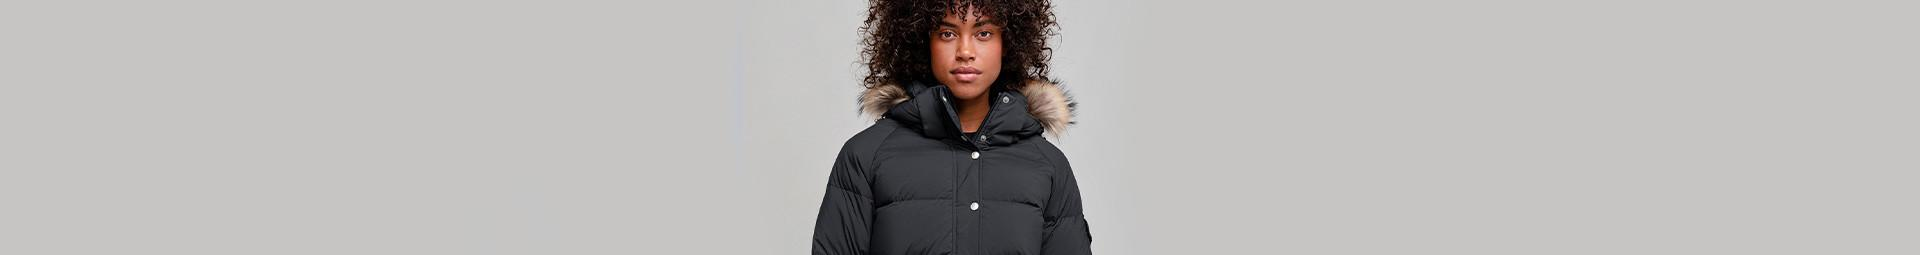 Women's winter bomber jackets | Trendy and comfy - Pyrenex